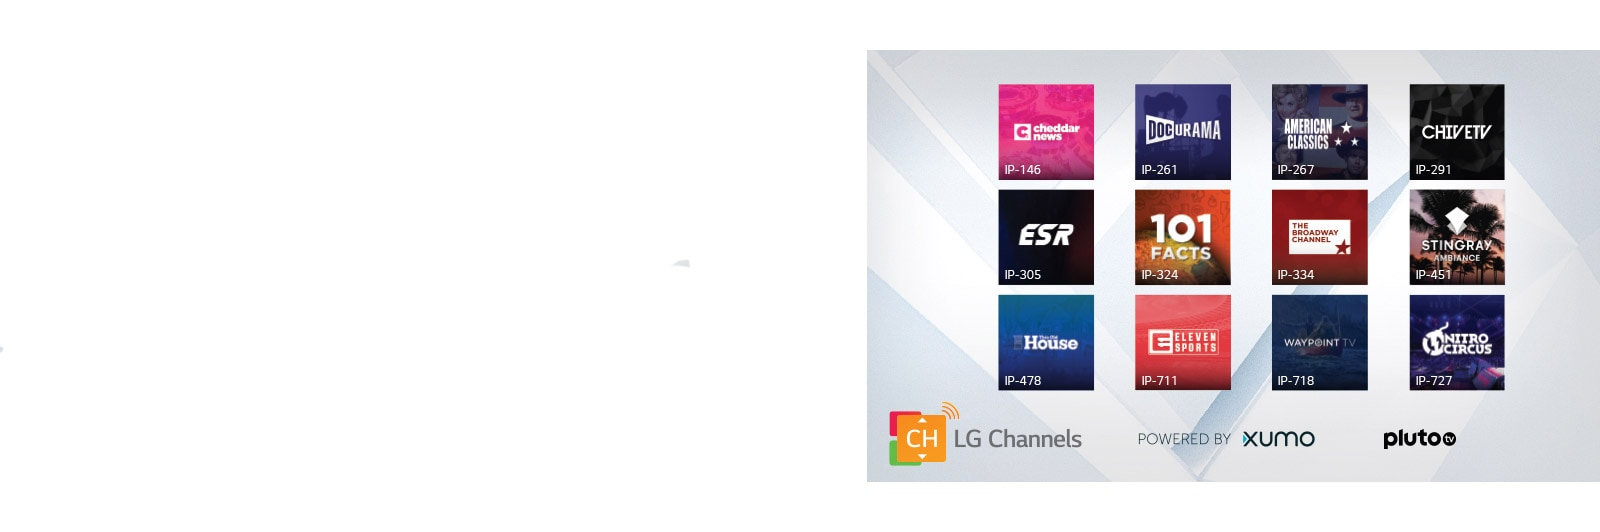 See more, stream more with LG Channels